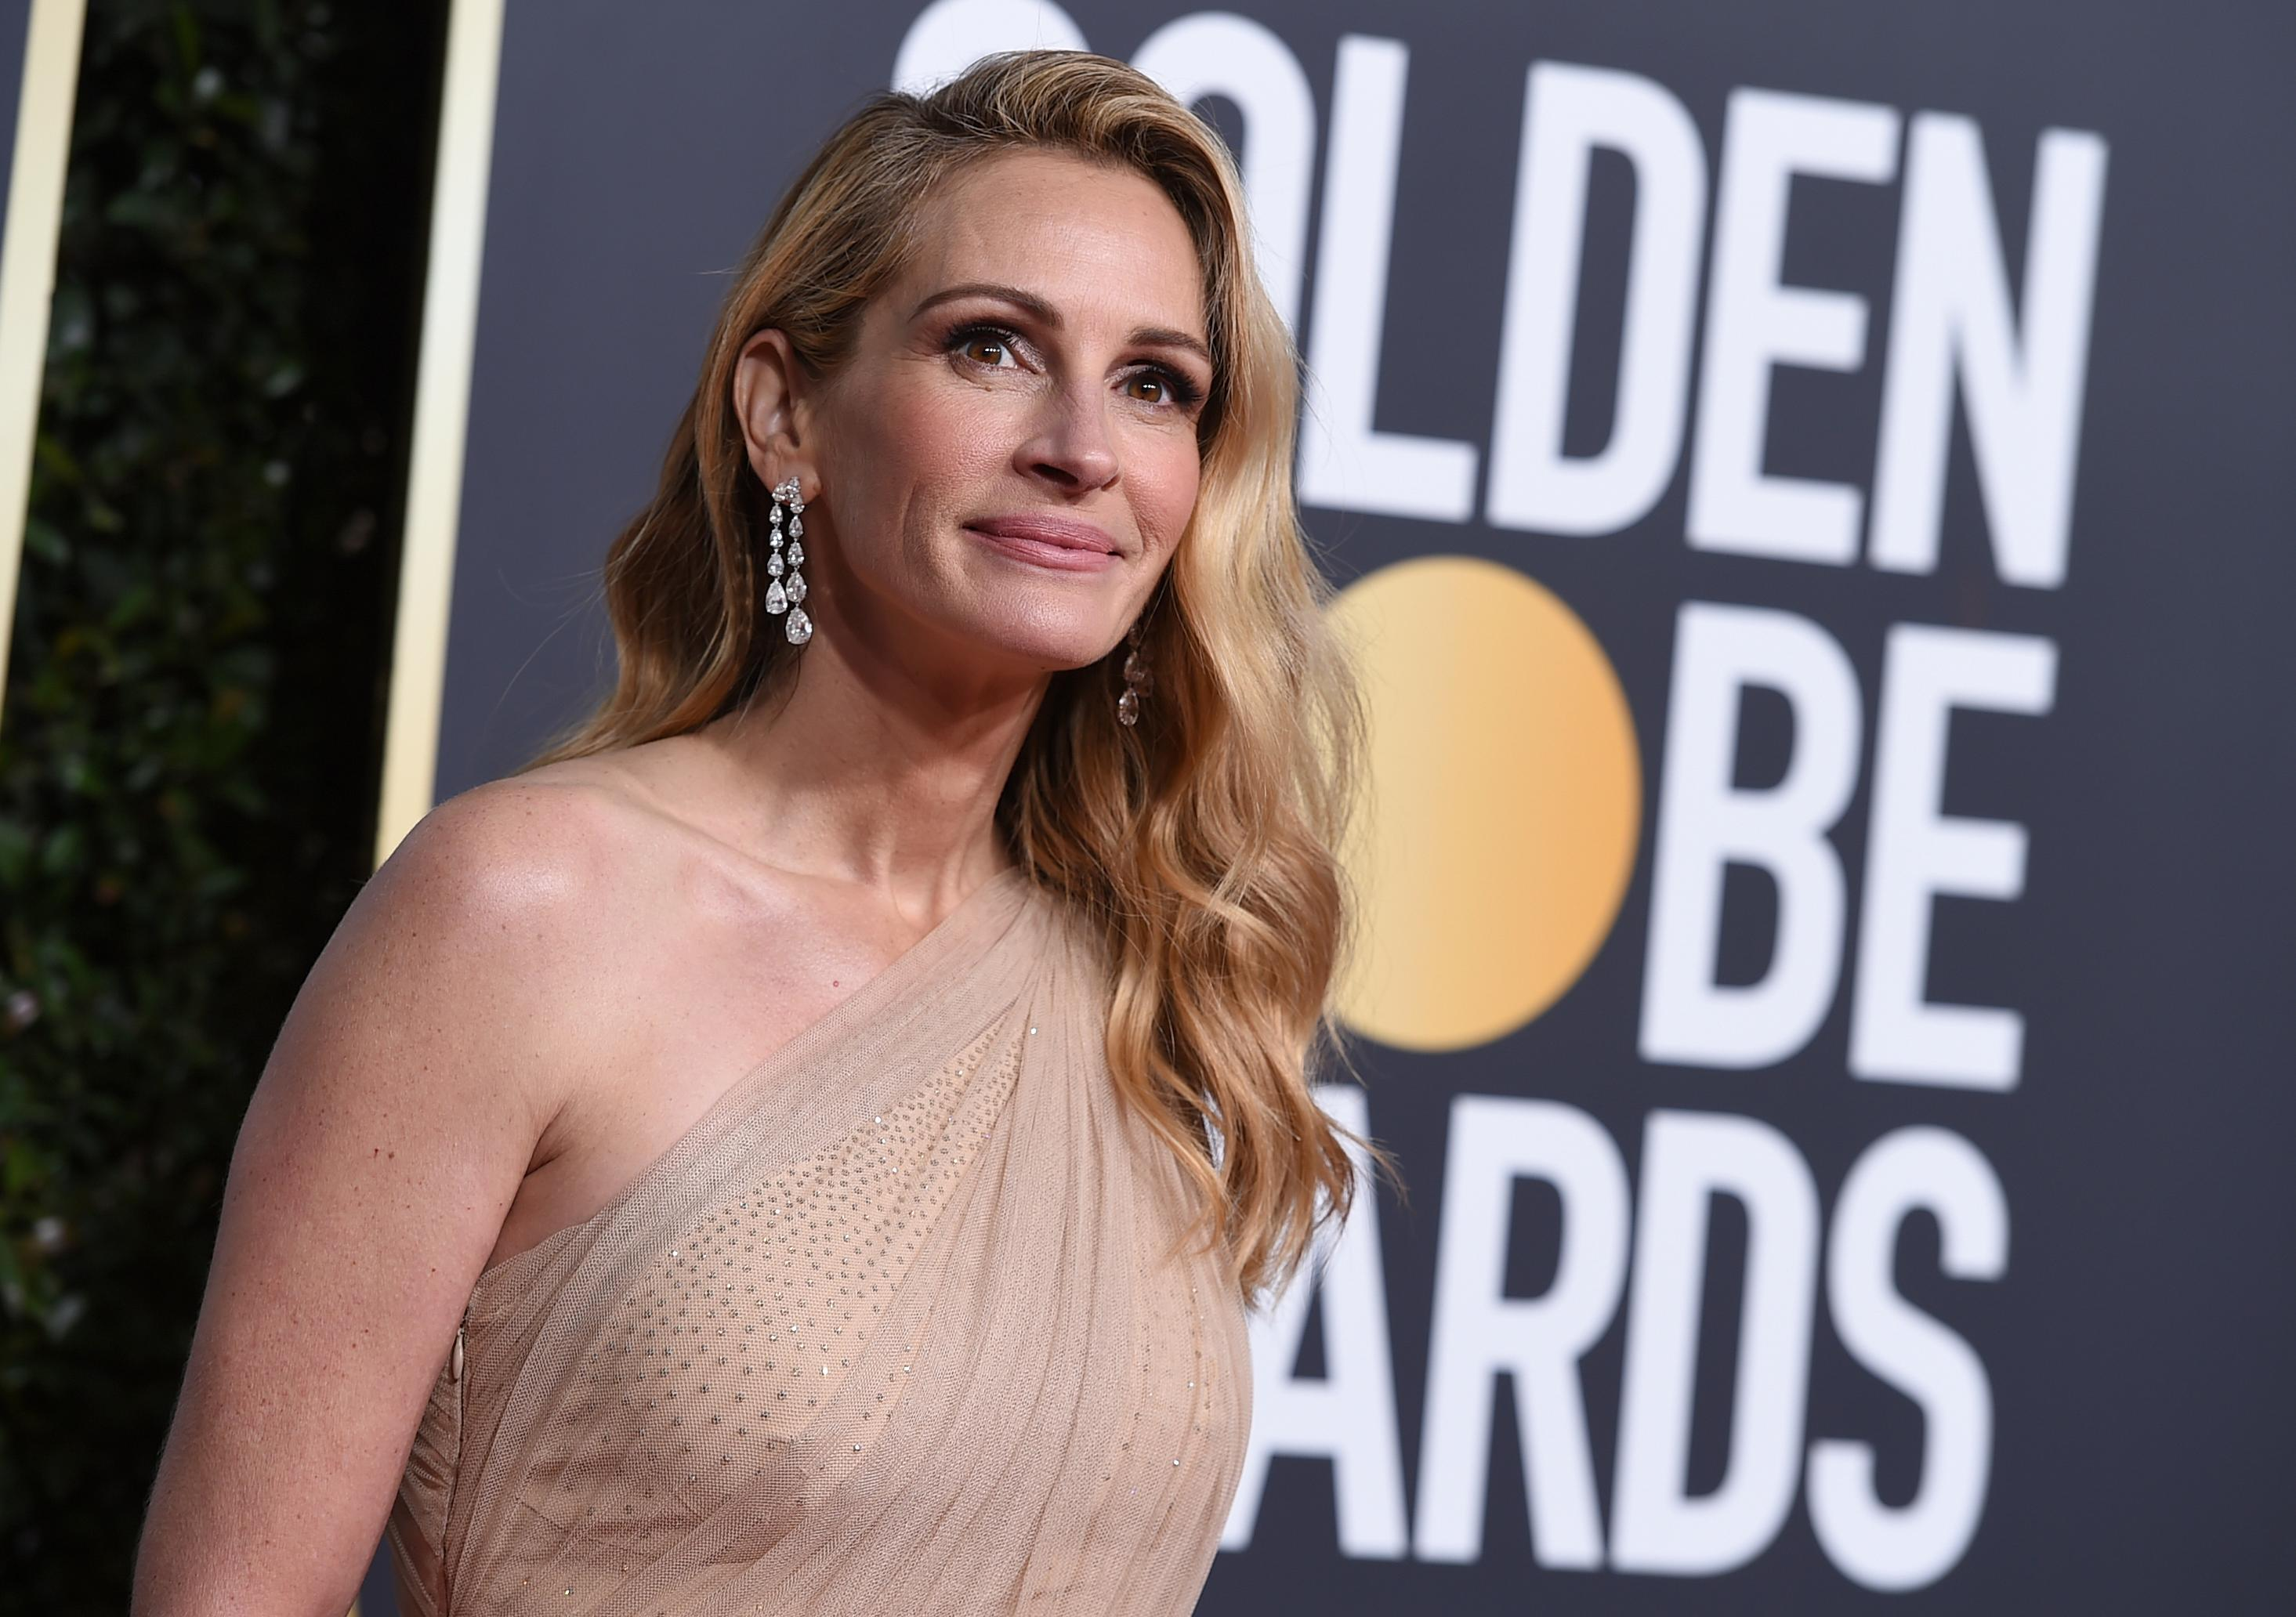 Julia Roberts arrives at the 76th annual Golden Globe Awards at the Beverly Hilton Hotel on Sunday, Jan. 6, 2019, in Beverly Hills, Calif. (Photo by Jordan Strauss/Invision/AP)